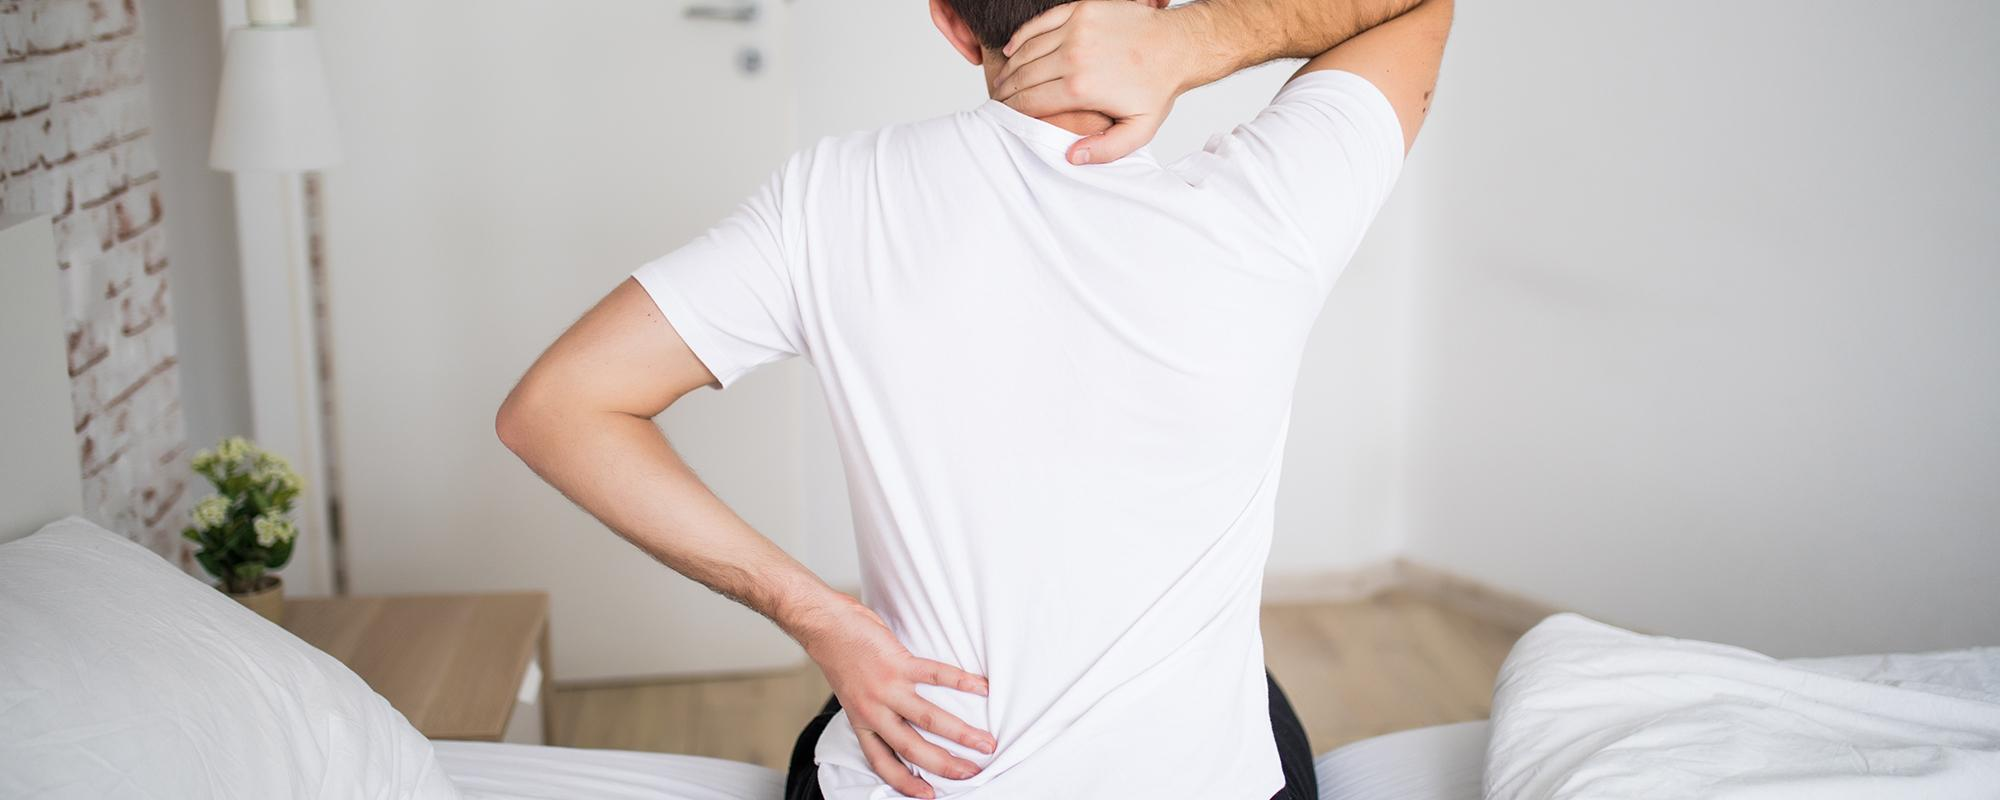 Man suffering from back pain at home in the bedroom.